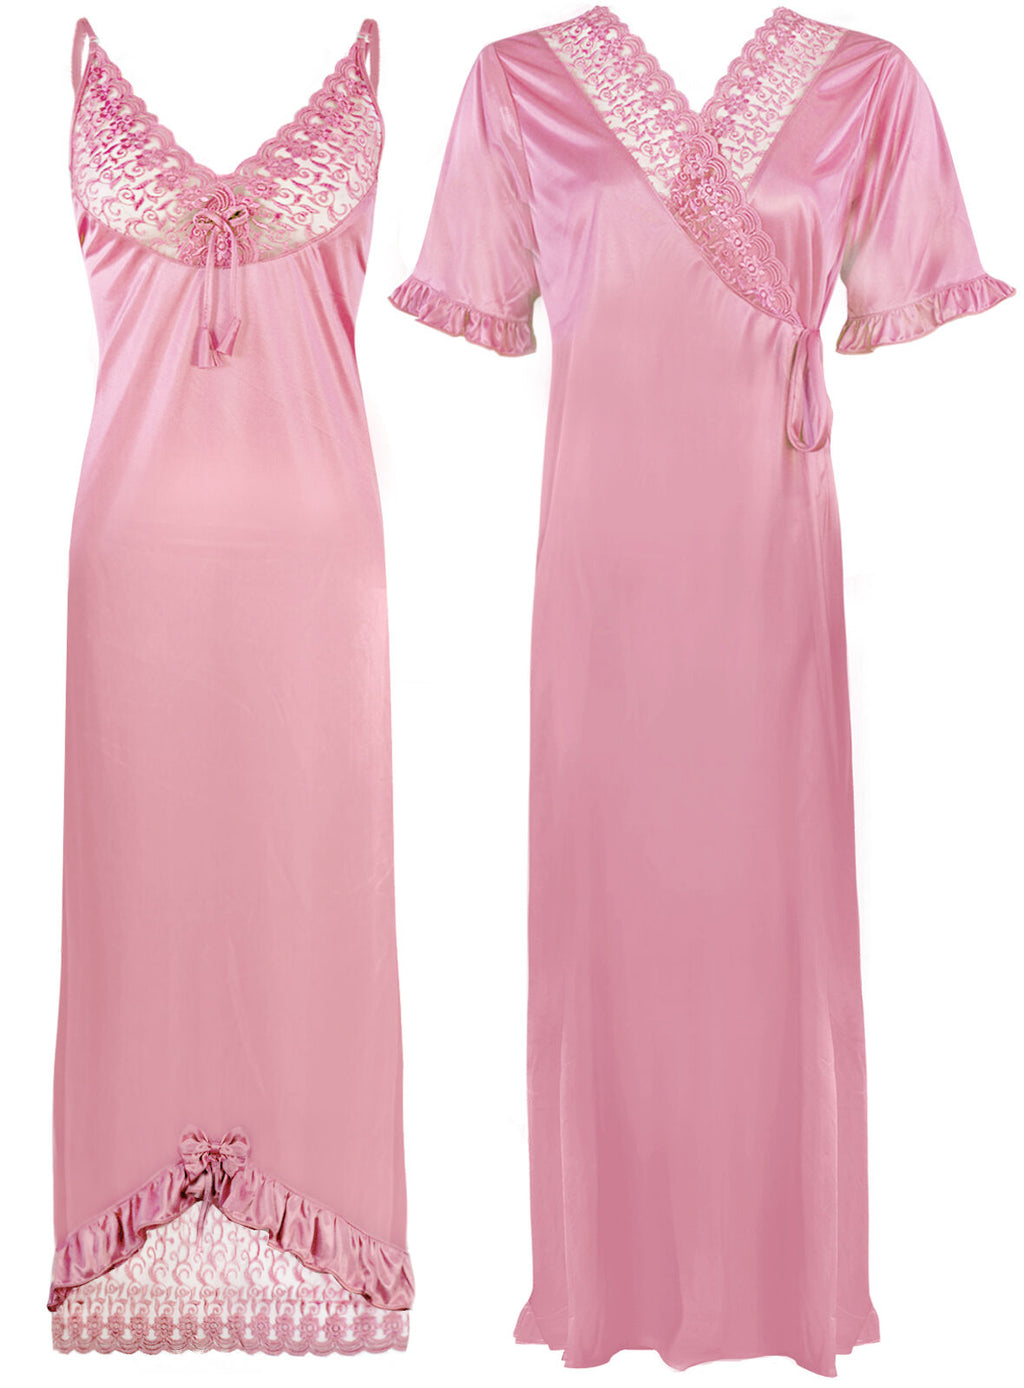 Women Satin Nighty With Robe 2 Pcs Set [colour]- Hautie UK, #Nightfashion | #Underfashion